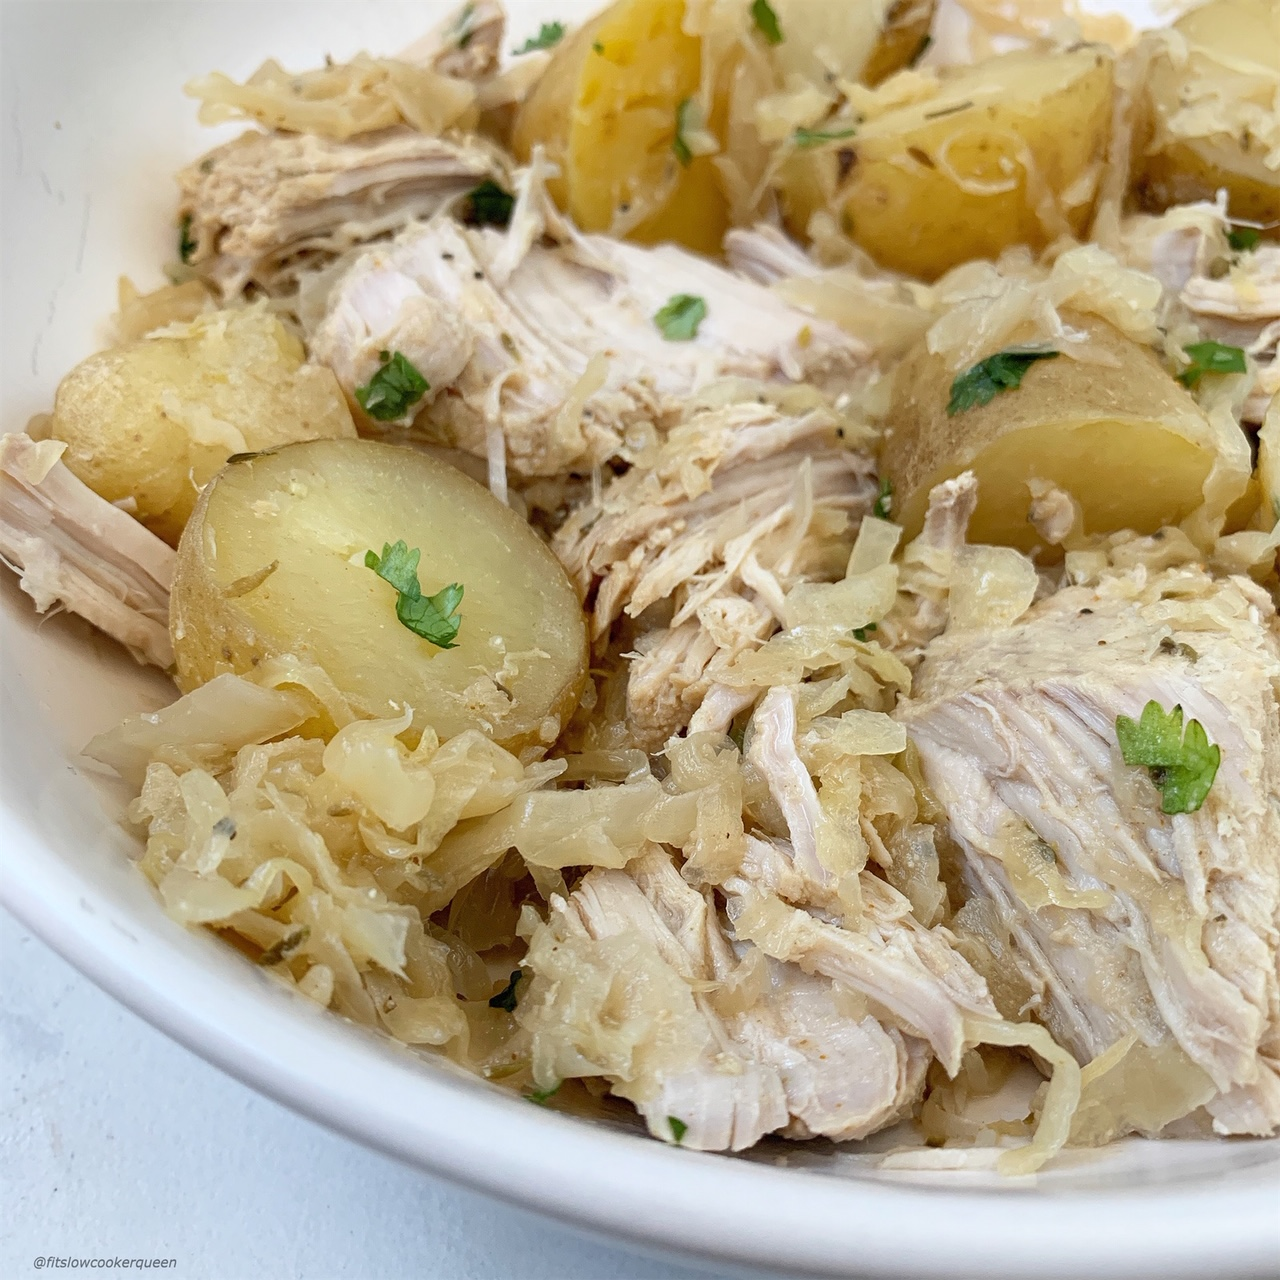 Pork & sauerkraut, an old country favorite that can be surprisingly healthy. This easy slow cooker or Instant Pot version is both whole30 and paleo.